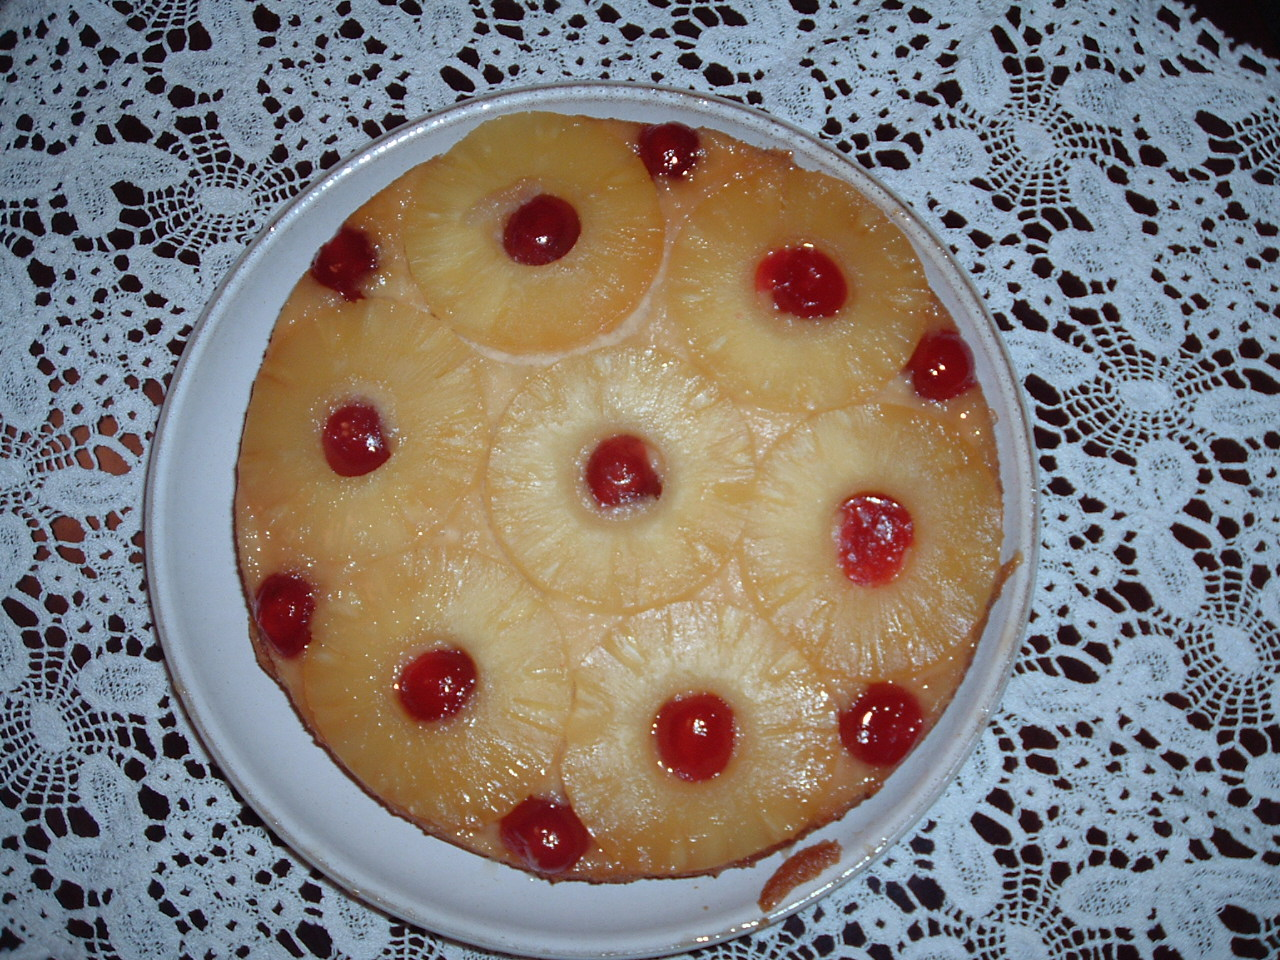 Pineapple upside-down pudding.